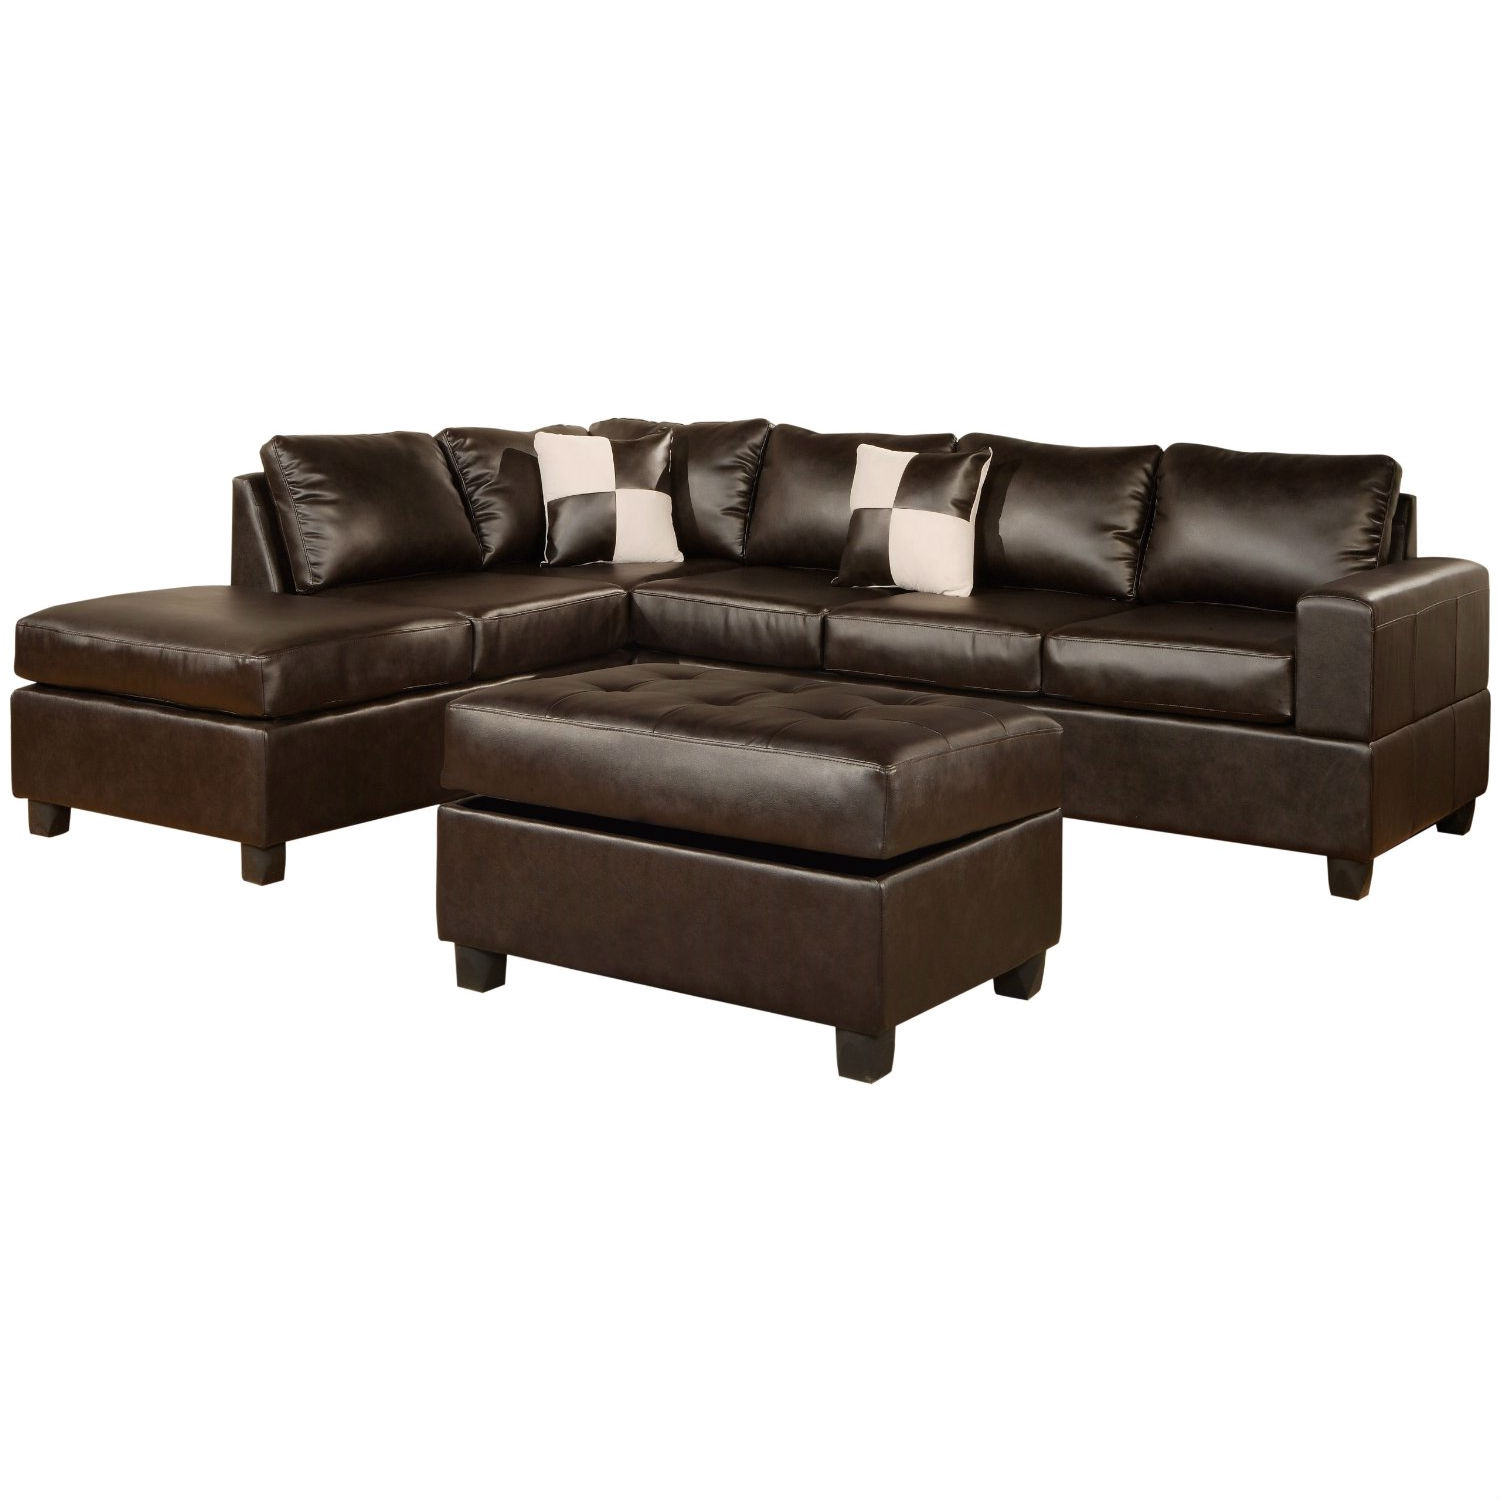 This Reversible Soft Touch Faux Leather 3-Piece Sectional Sofa Set includes: 3-person sofa, L/R-reversible chaise, and 38-inch-by-26-inch storage ottoman. Durable bonded leather and leather match upholstery over hardwood frames.